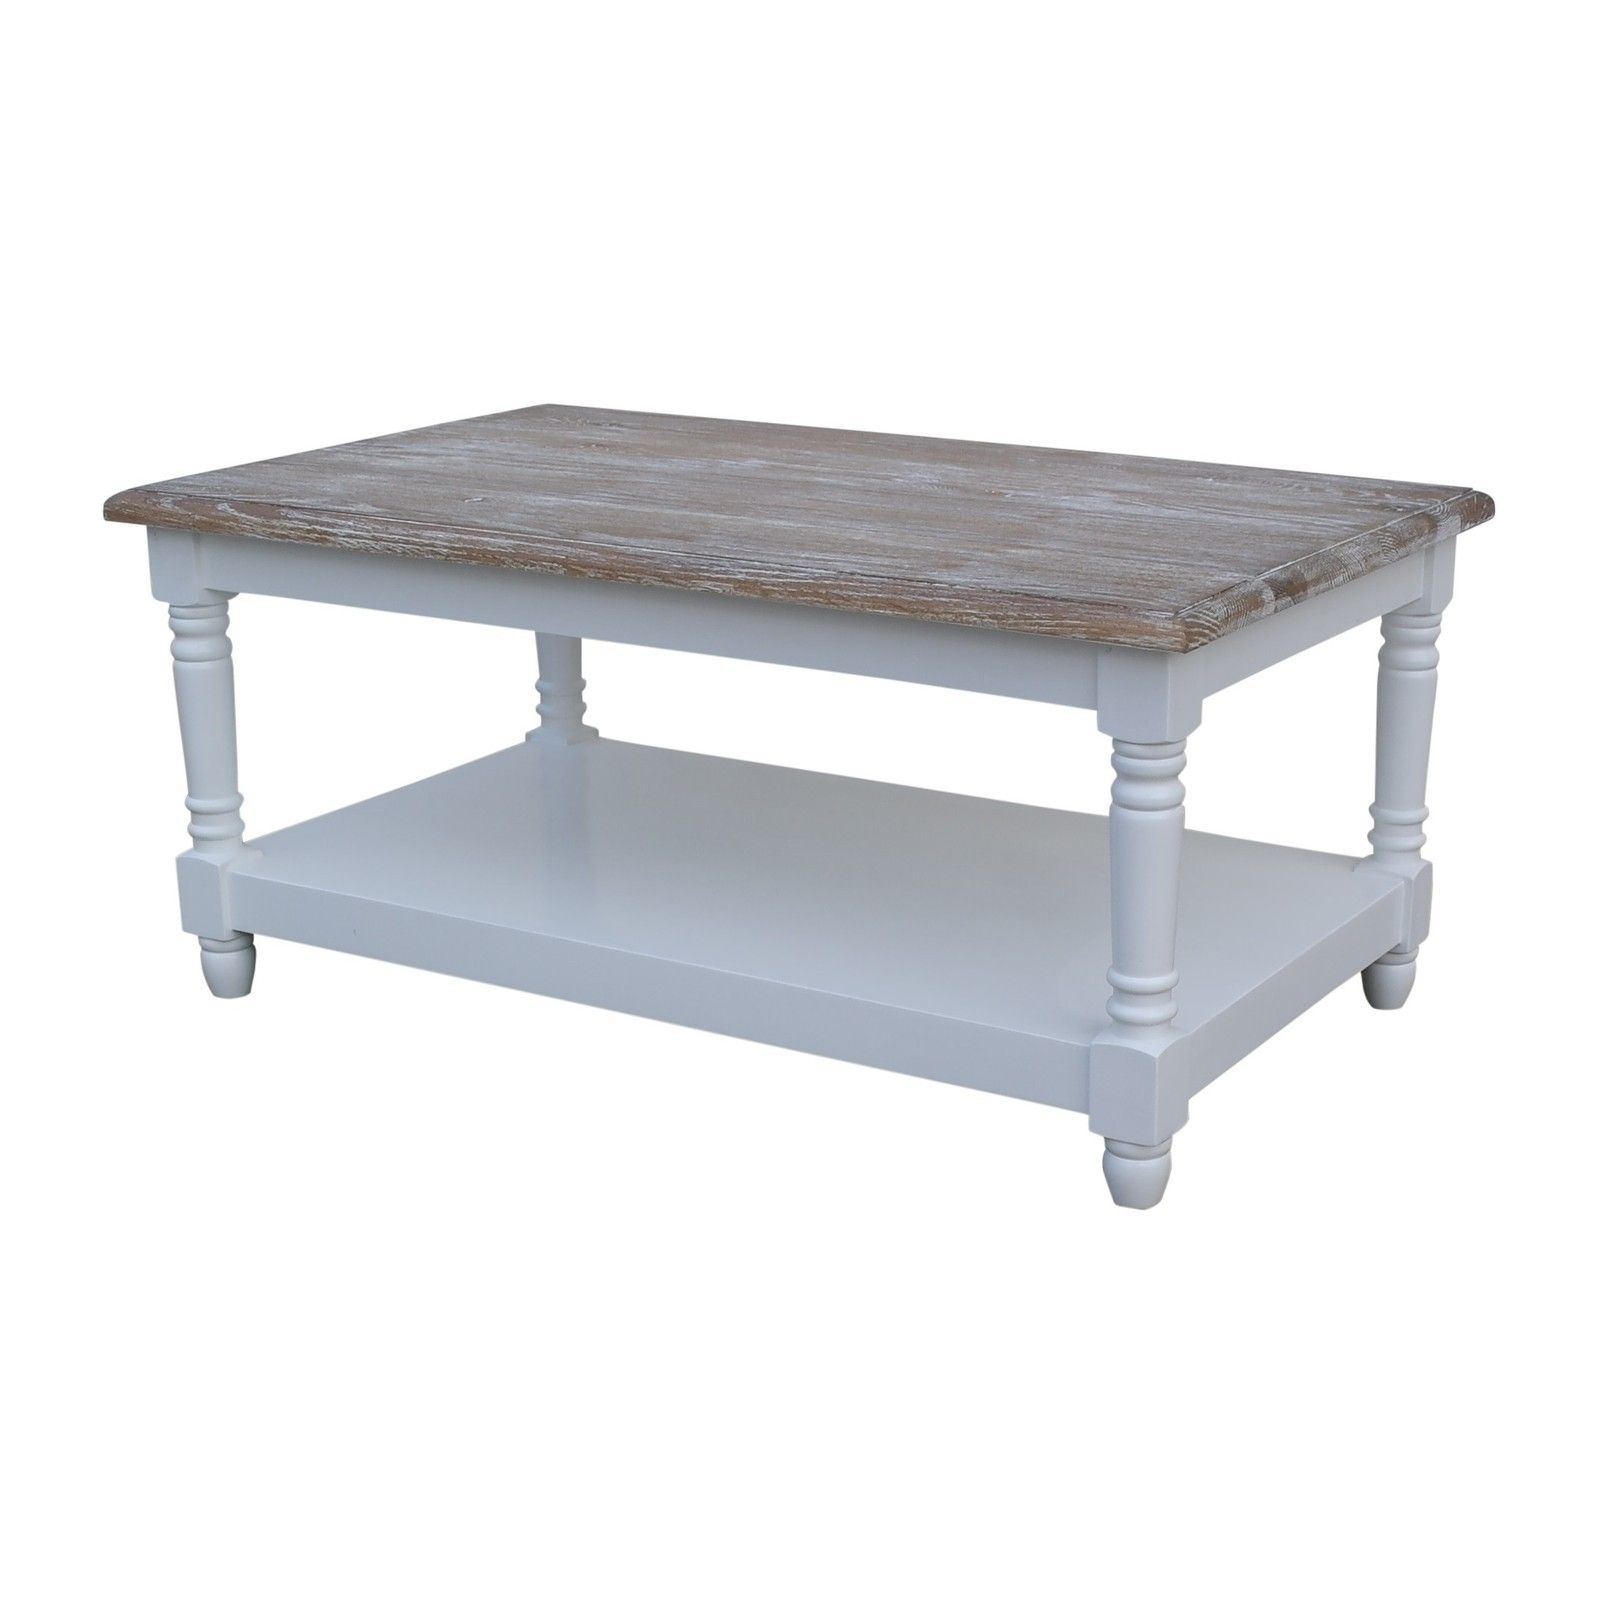 French Chateau White Rectangular Oak Coffee Table with Washed Wood